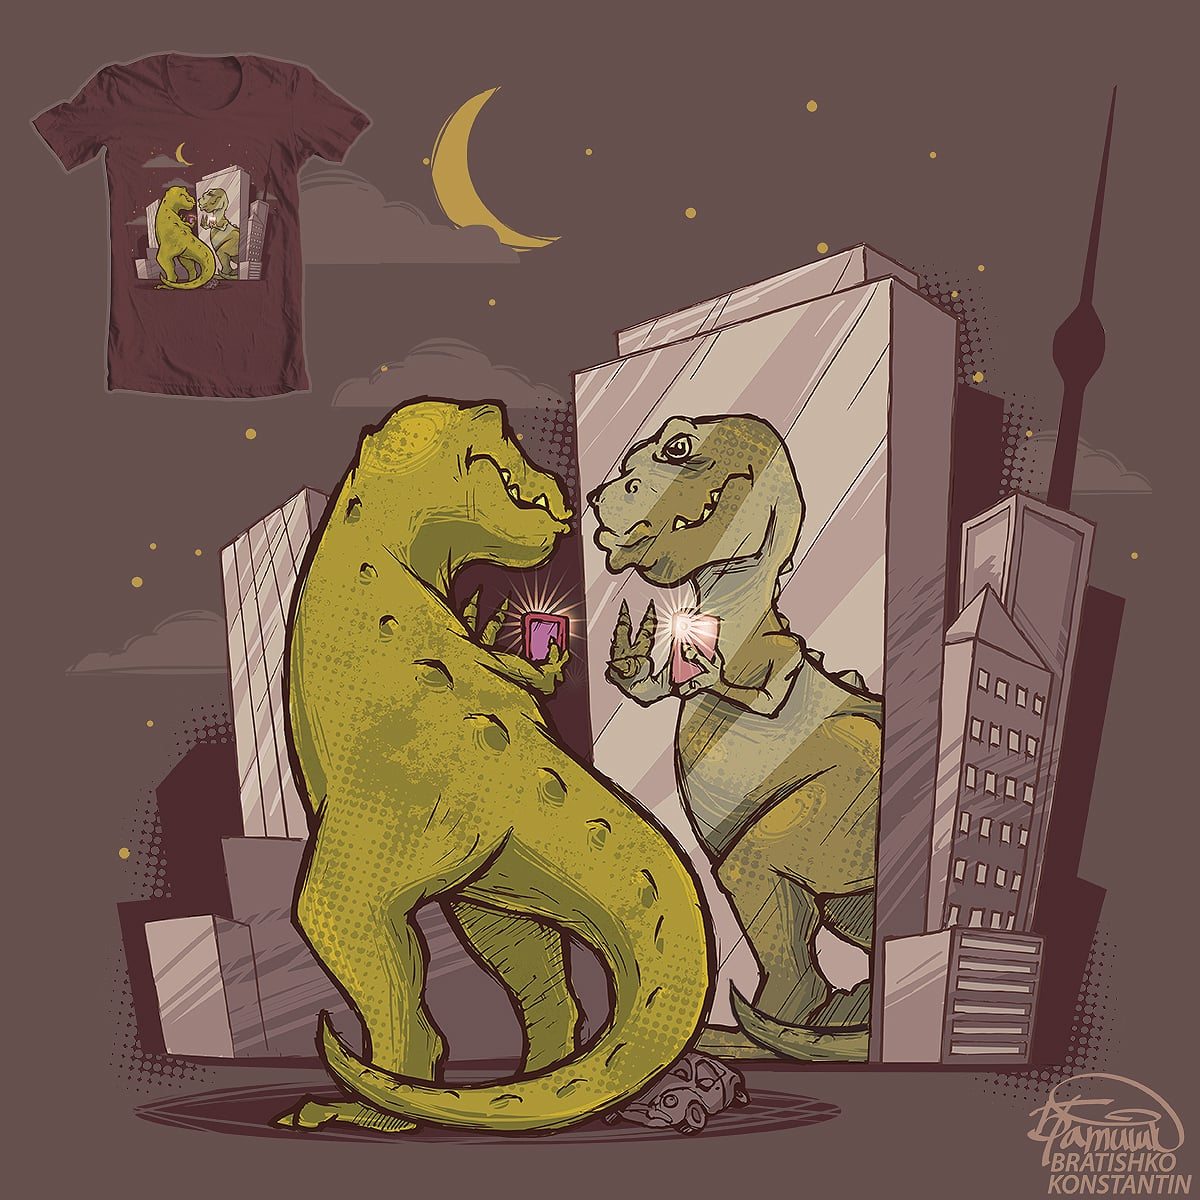 T-rex by KONSTANTIN BRATISHKO on Threadless